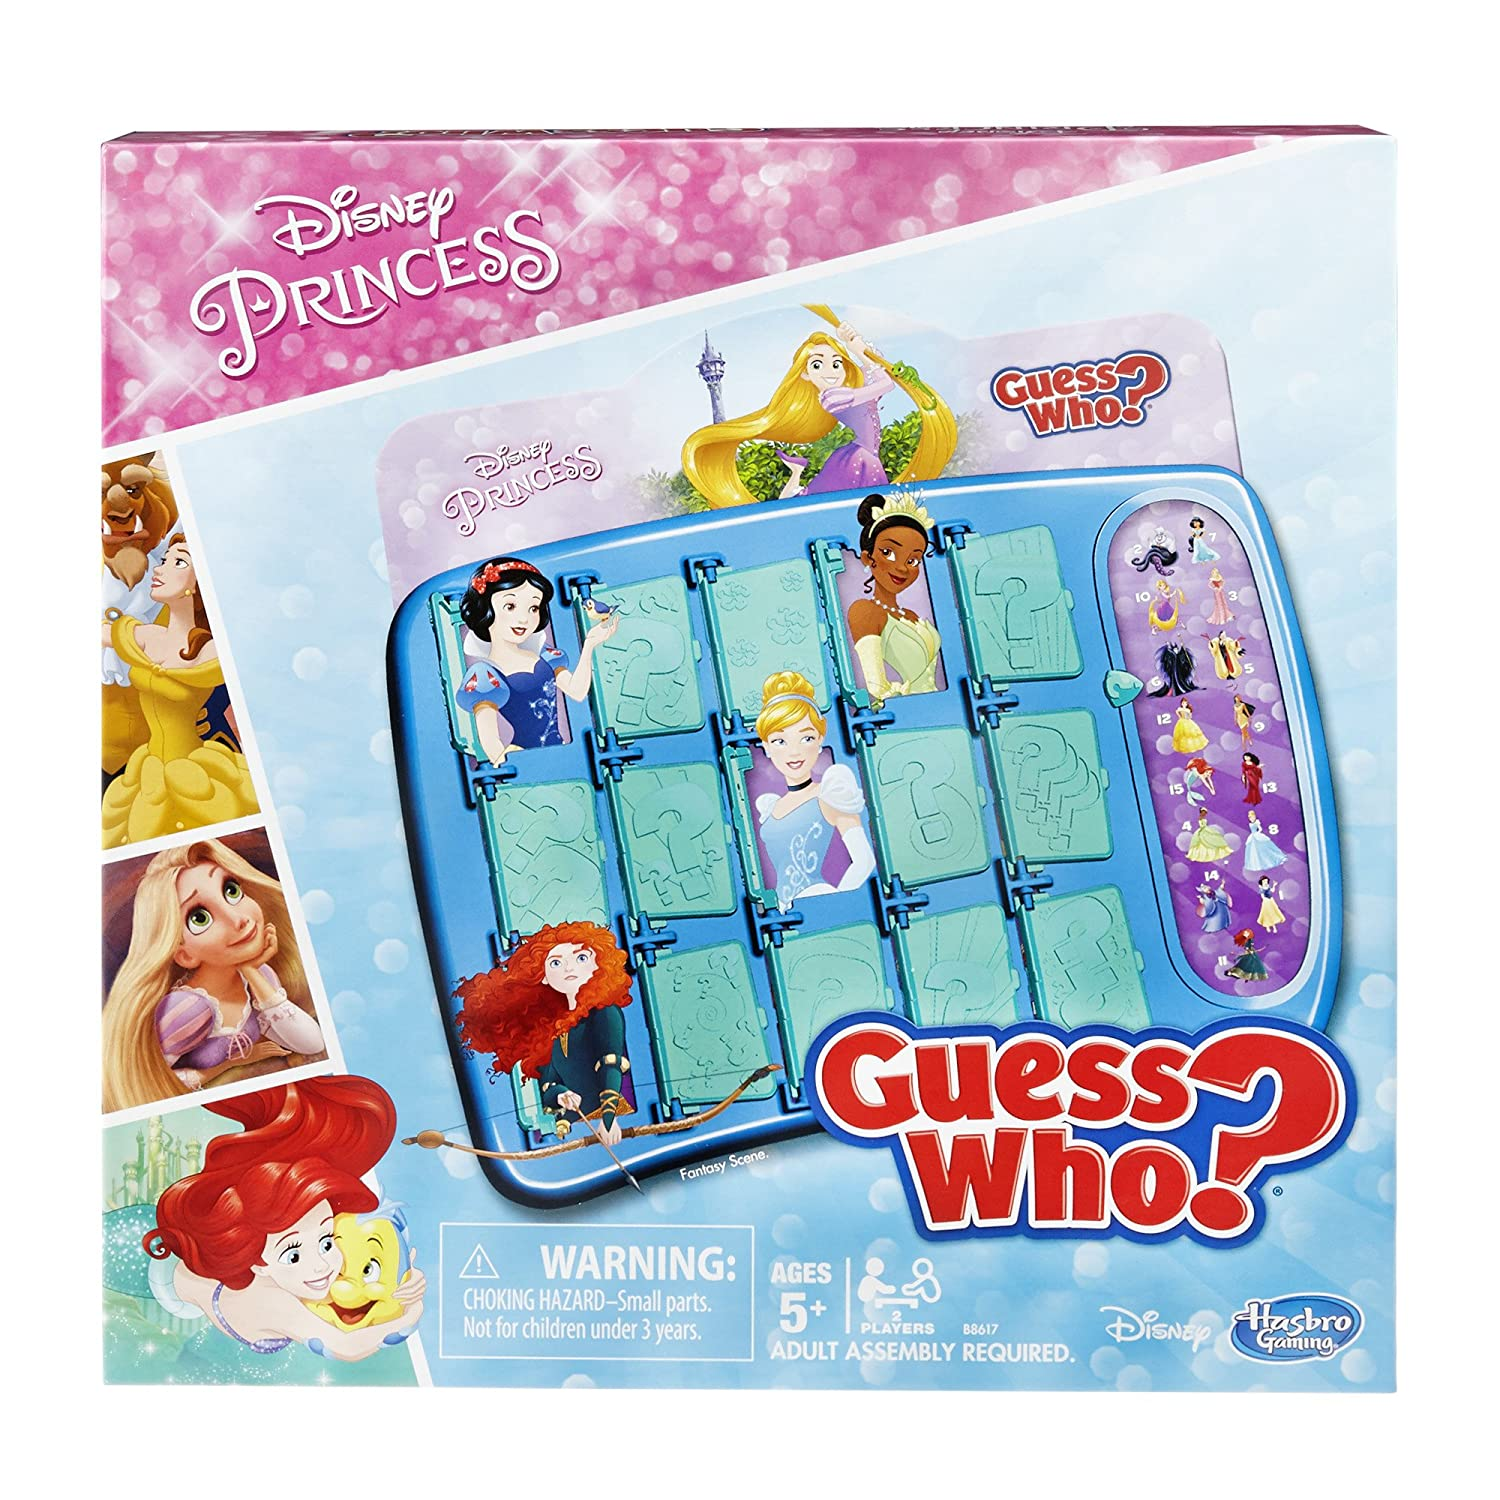 image about Guess Who Printable identified as Wager Who? Disney Princess Model Video game